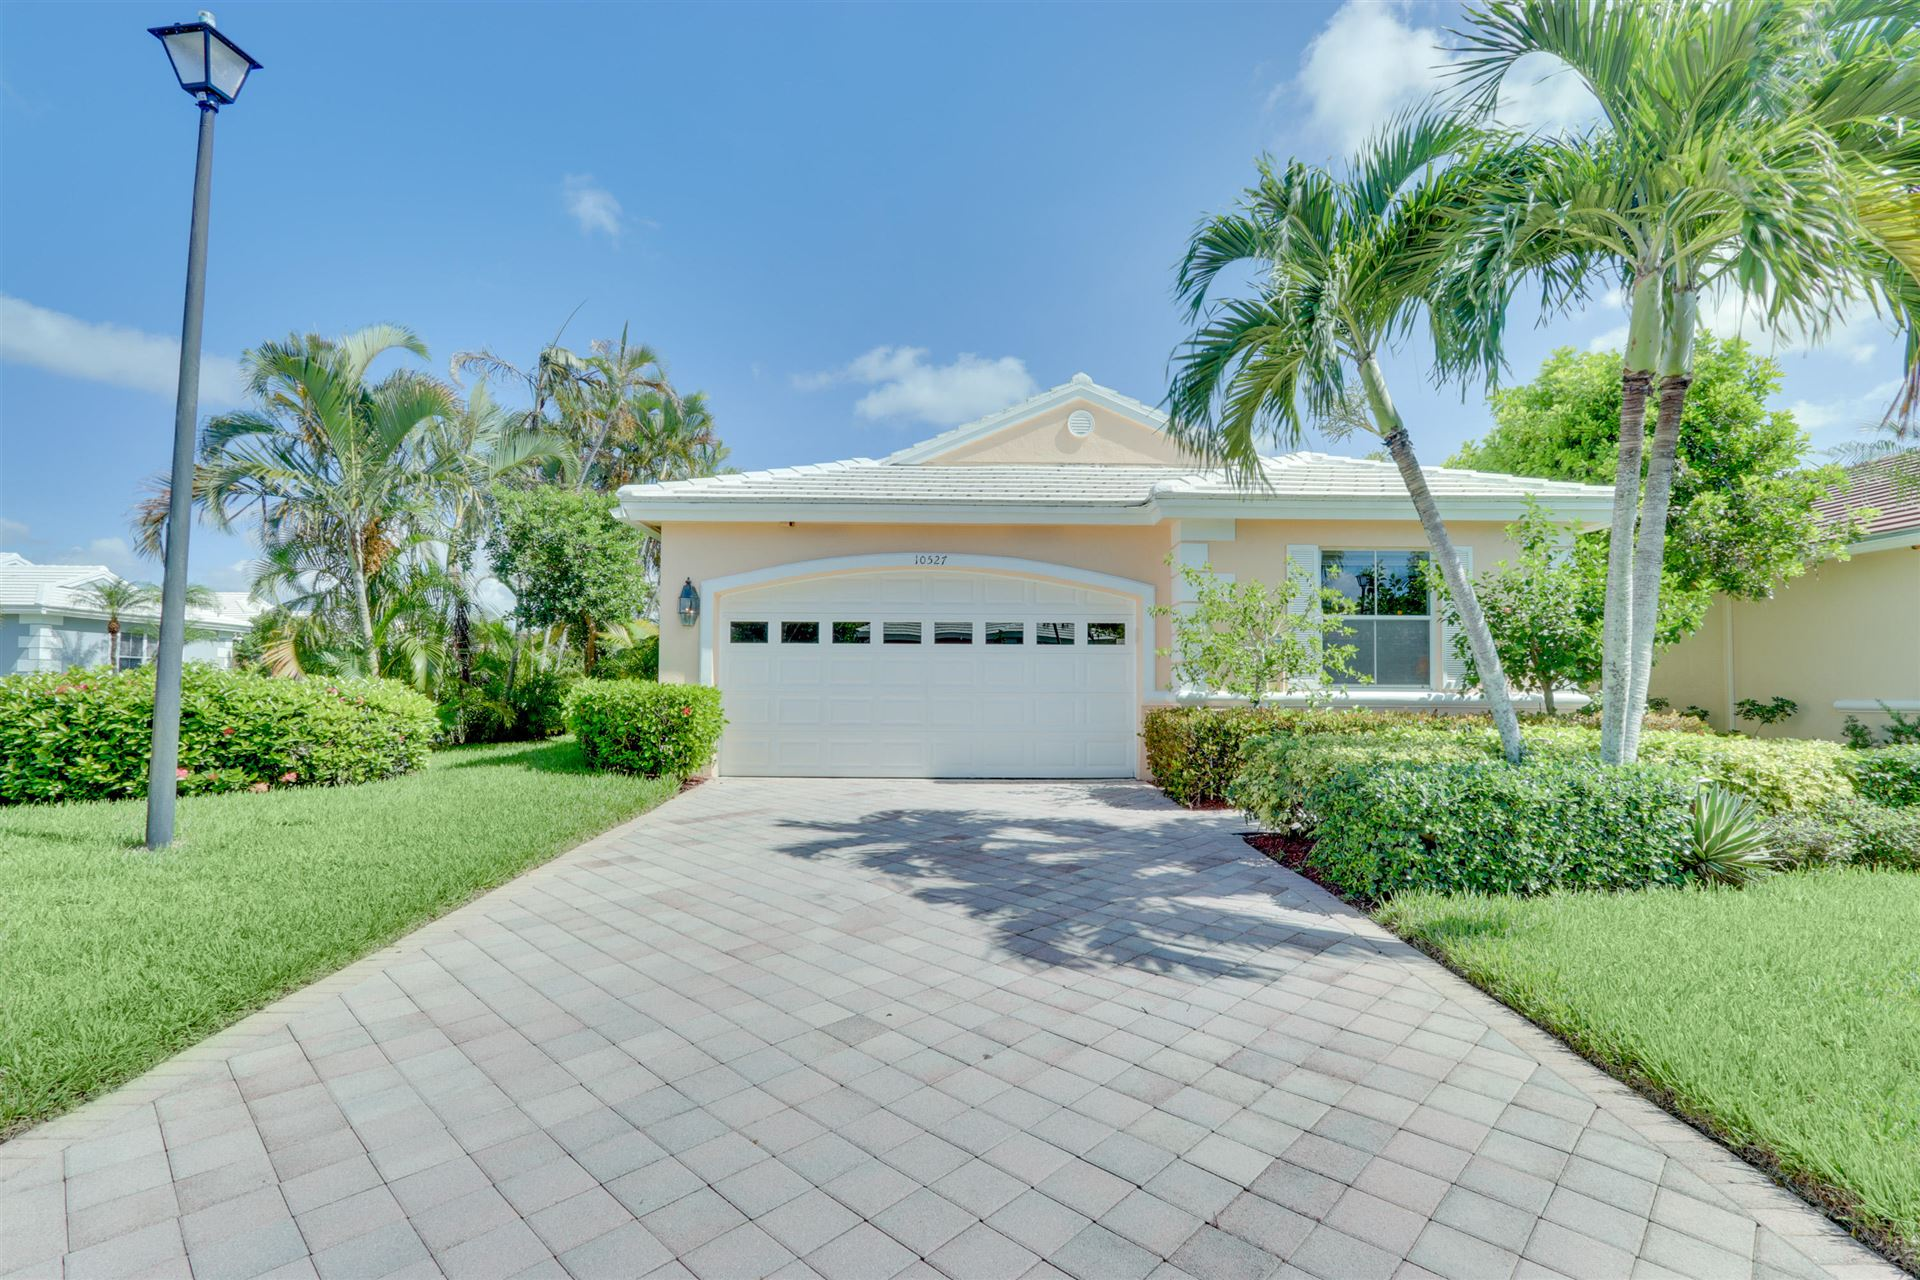 10527 Kinkaid Terrace, Lake Worth, FL 33449 - #: RX-10653660